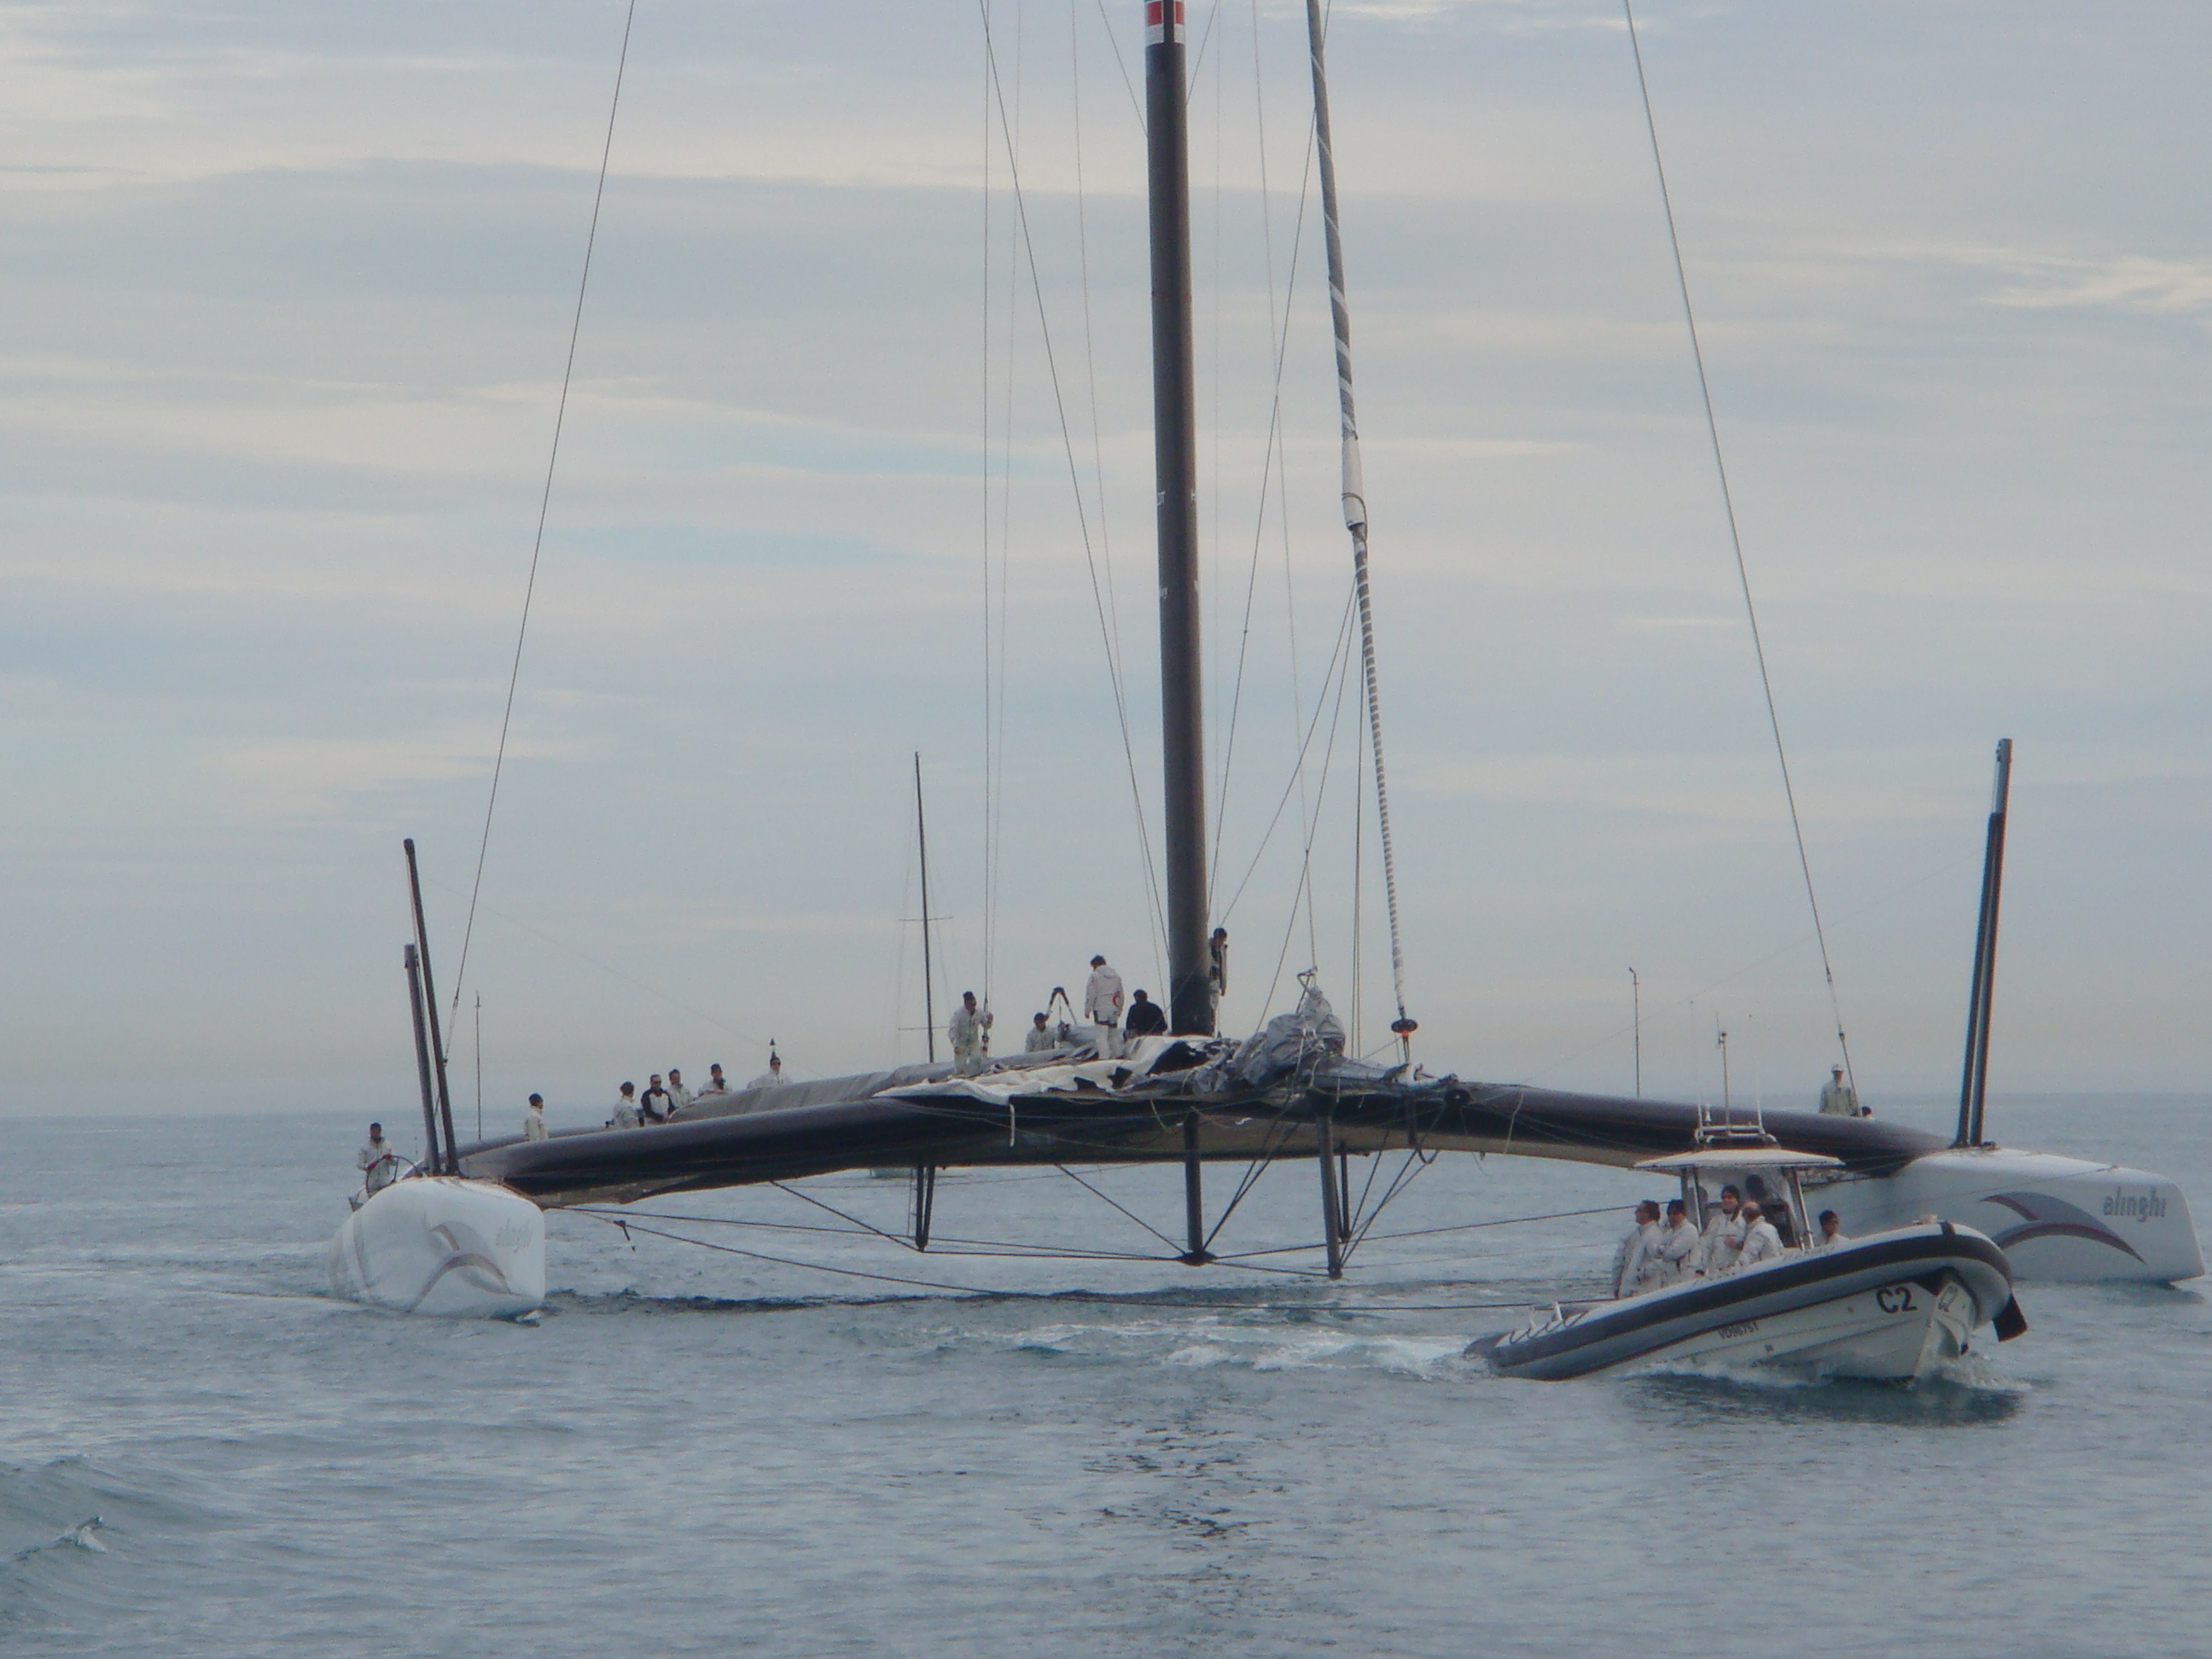 Alinghi - our favourite catamaran